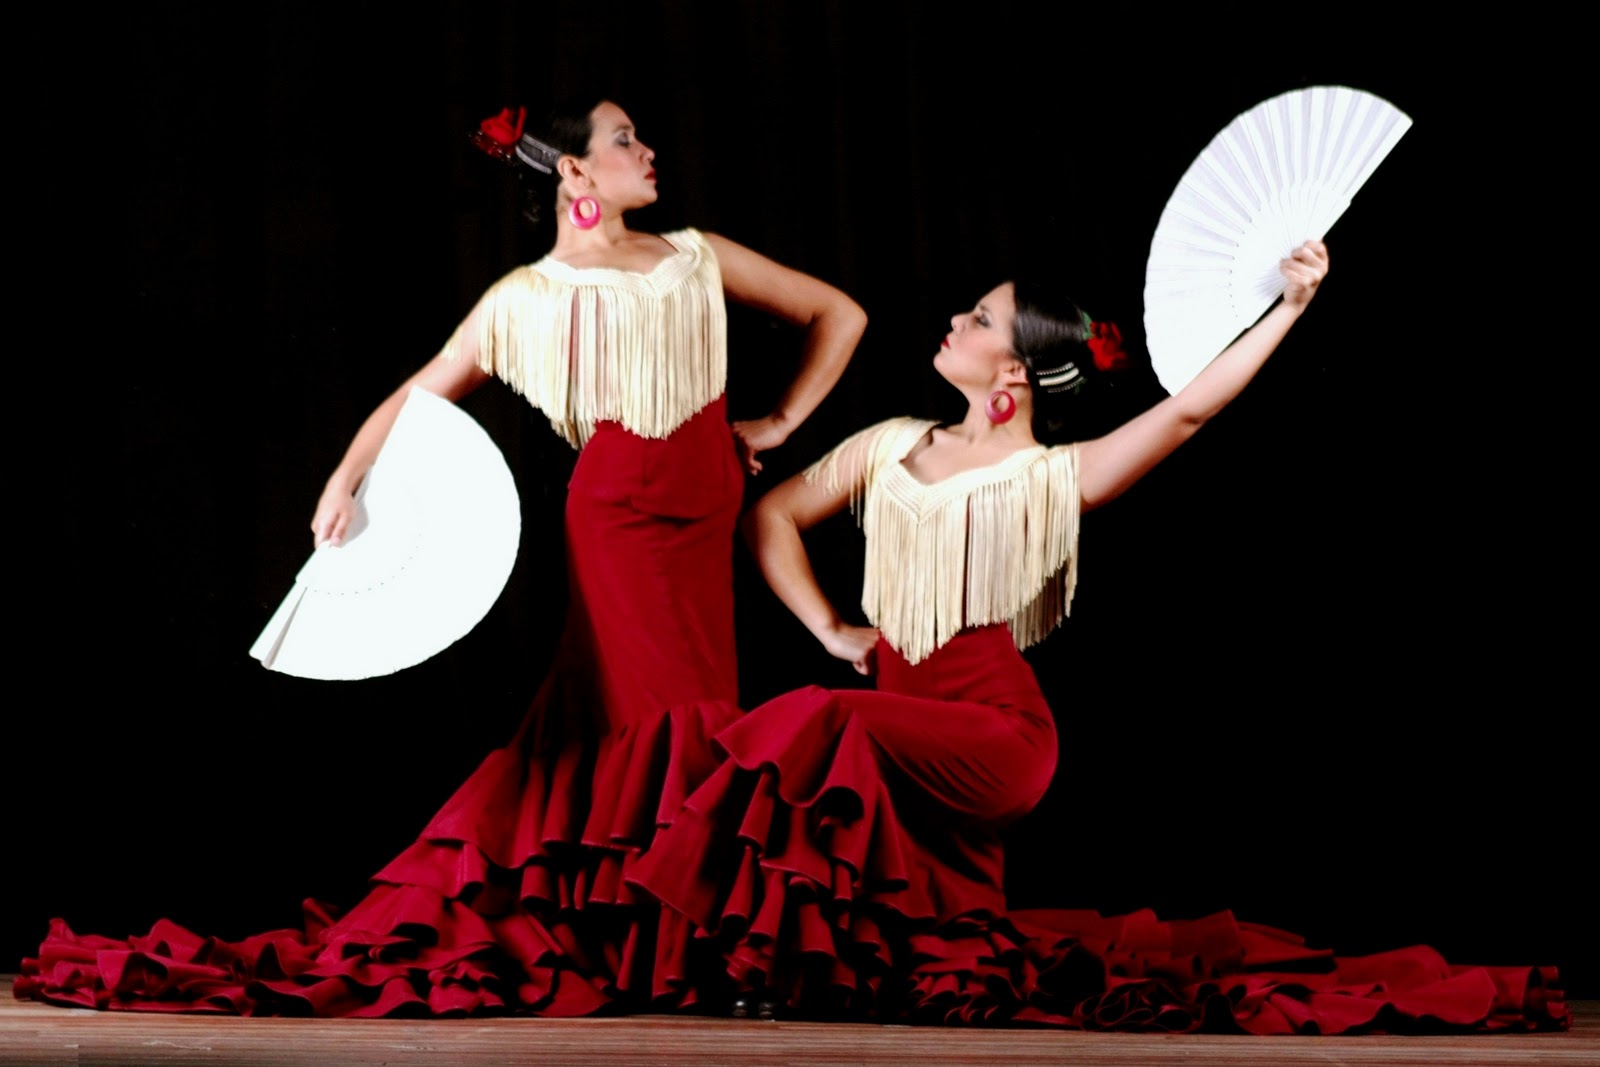 https://happyinspain.com/assets/uploads/2014/04/FLAMENCO-3.jpg